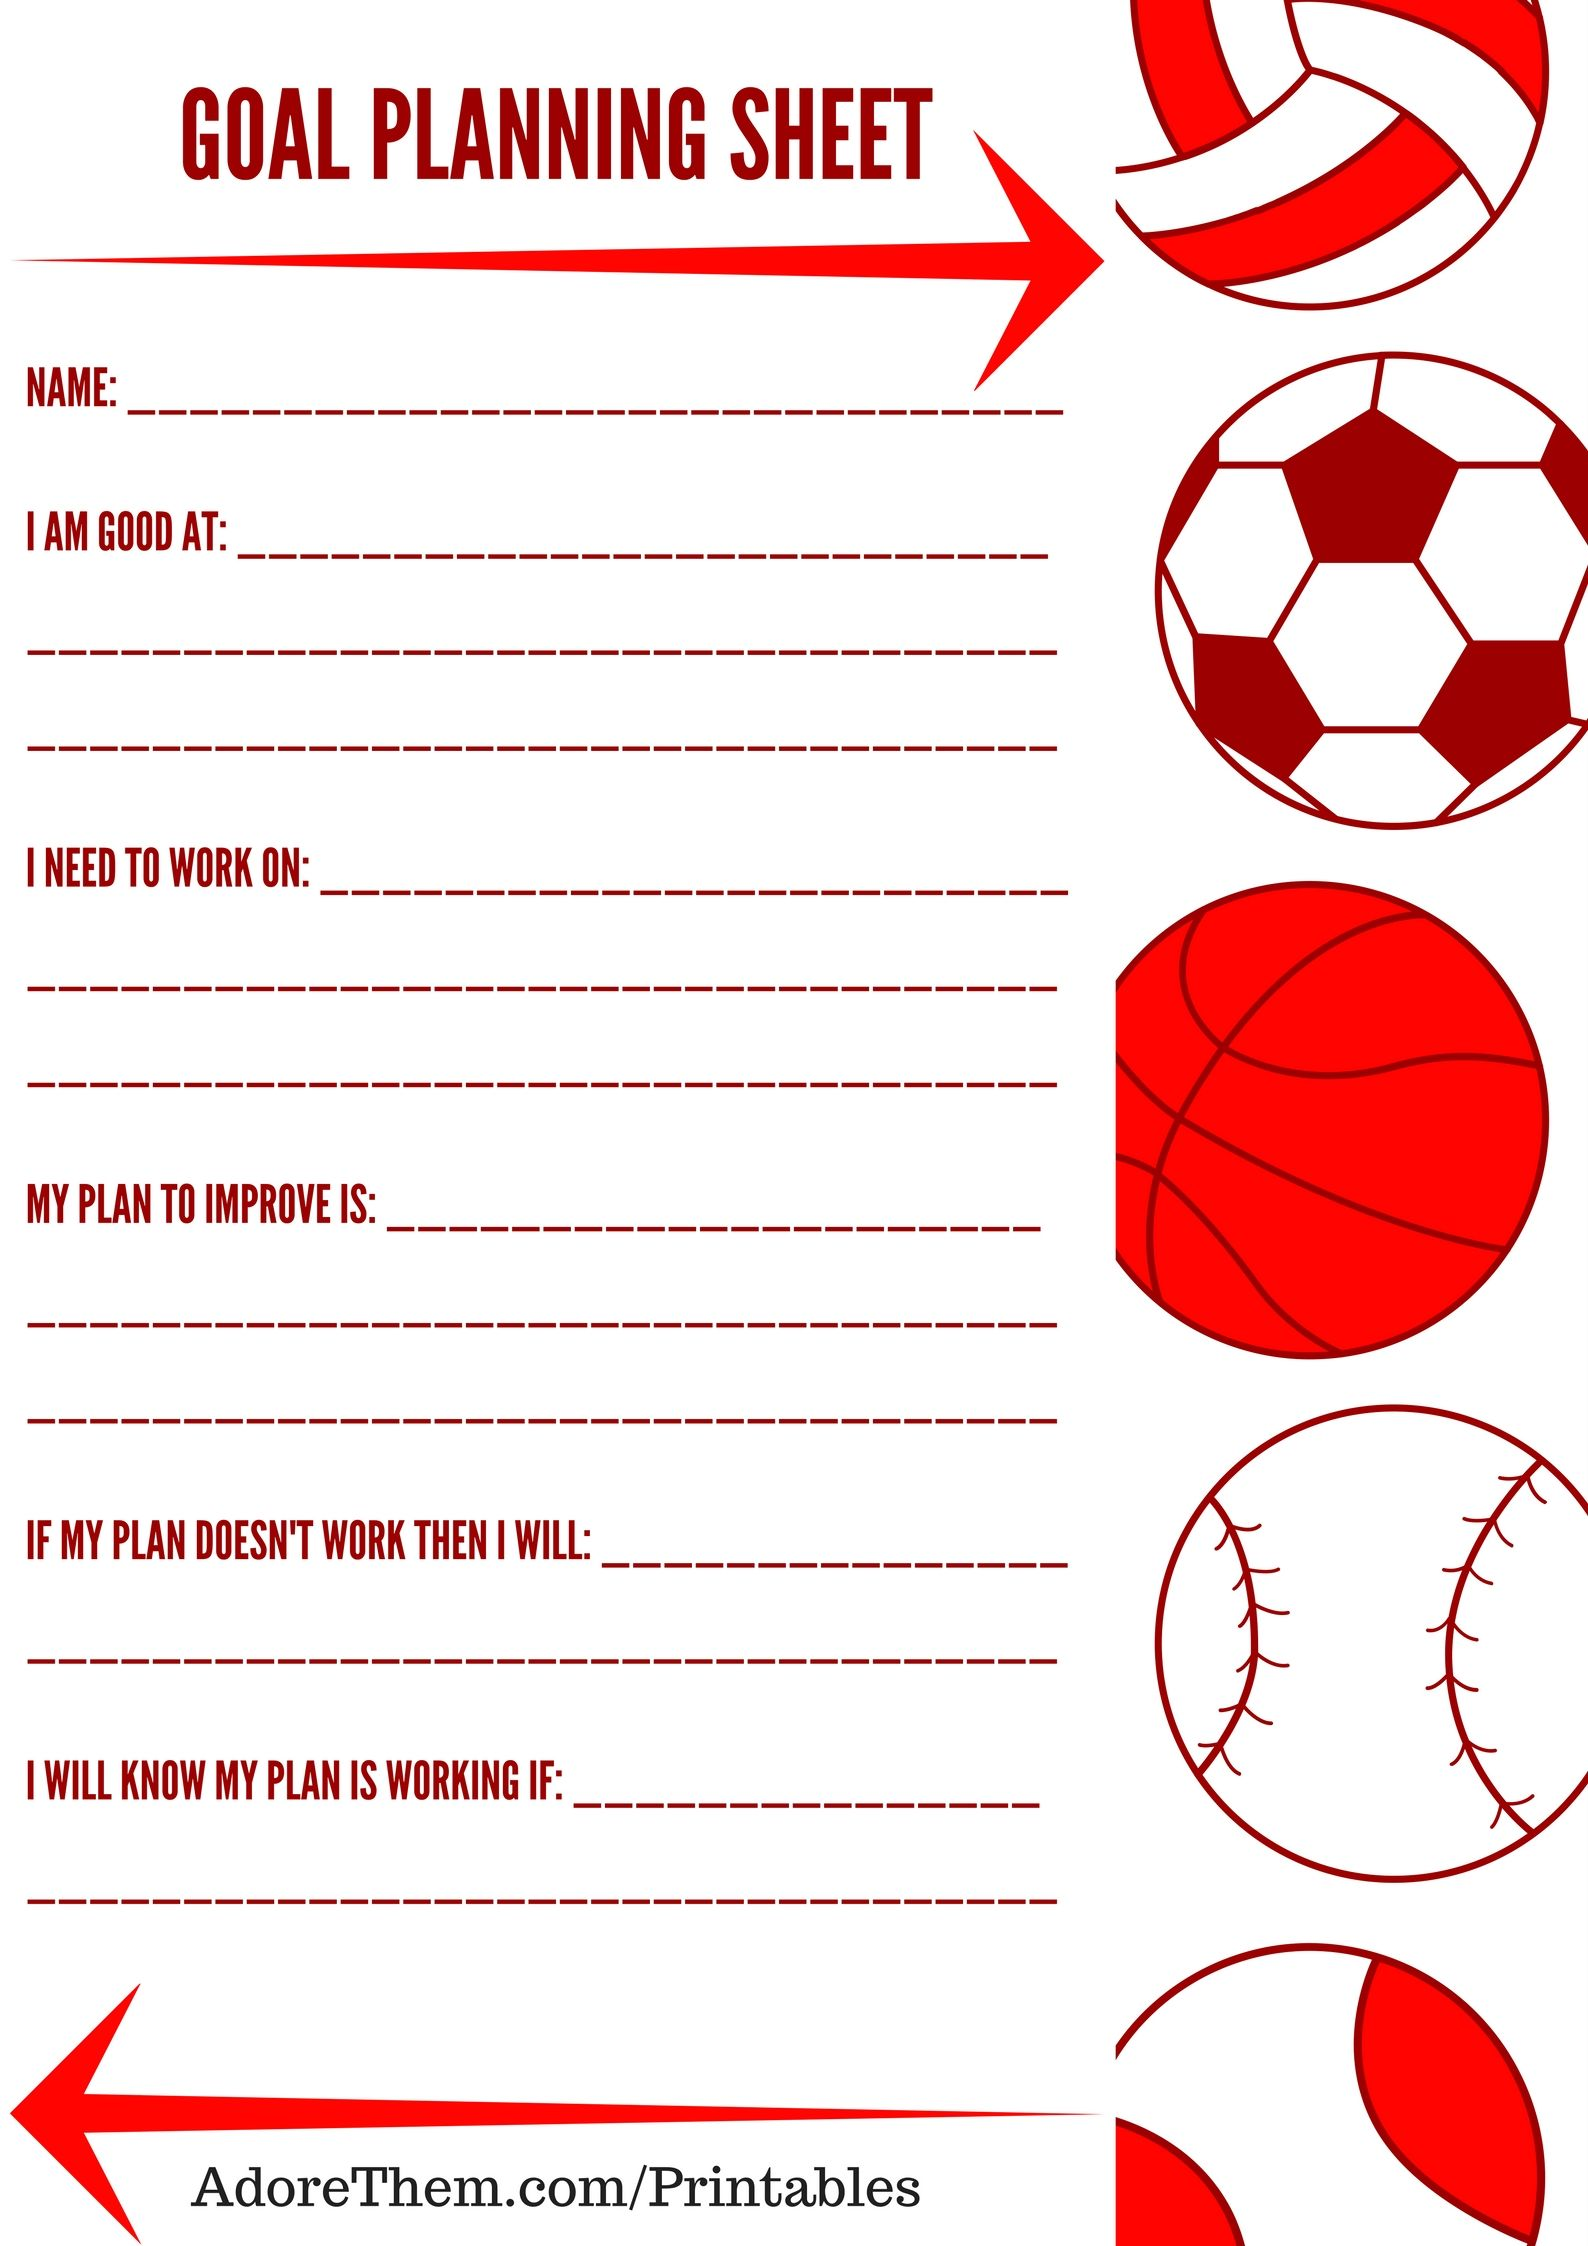 Goal Planning Worksheet For Kids Free Printable